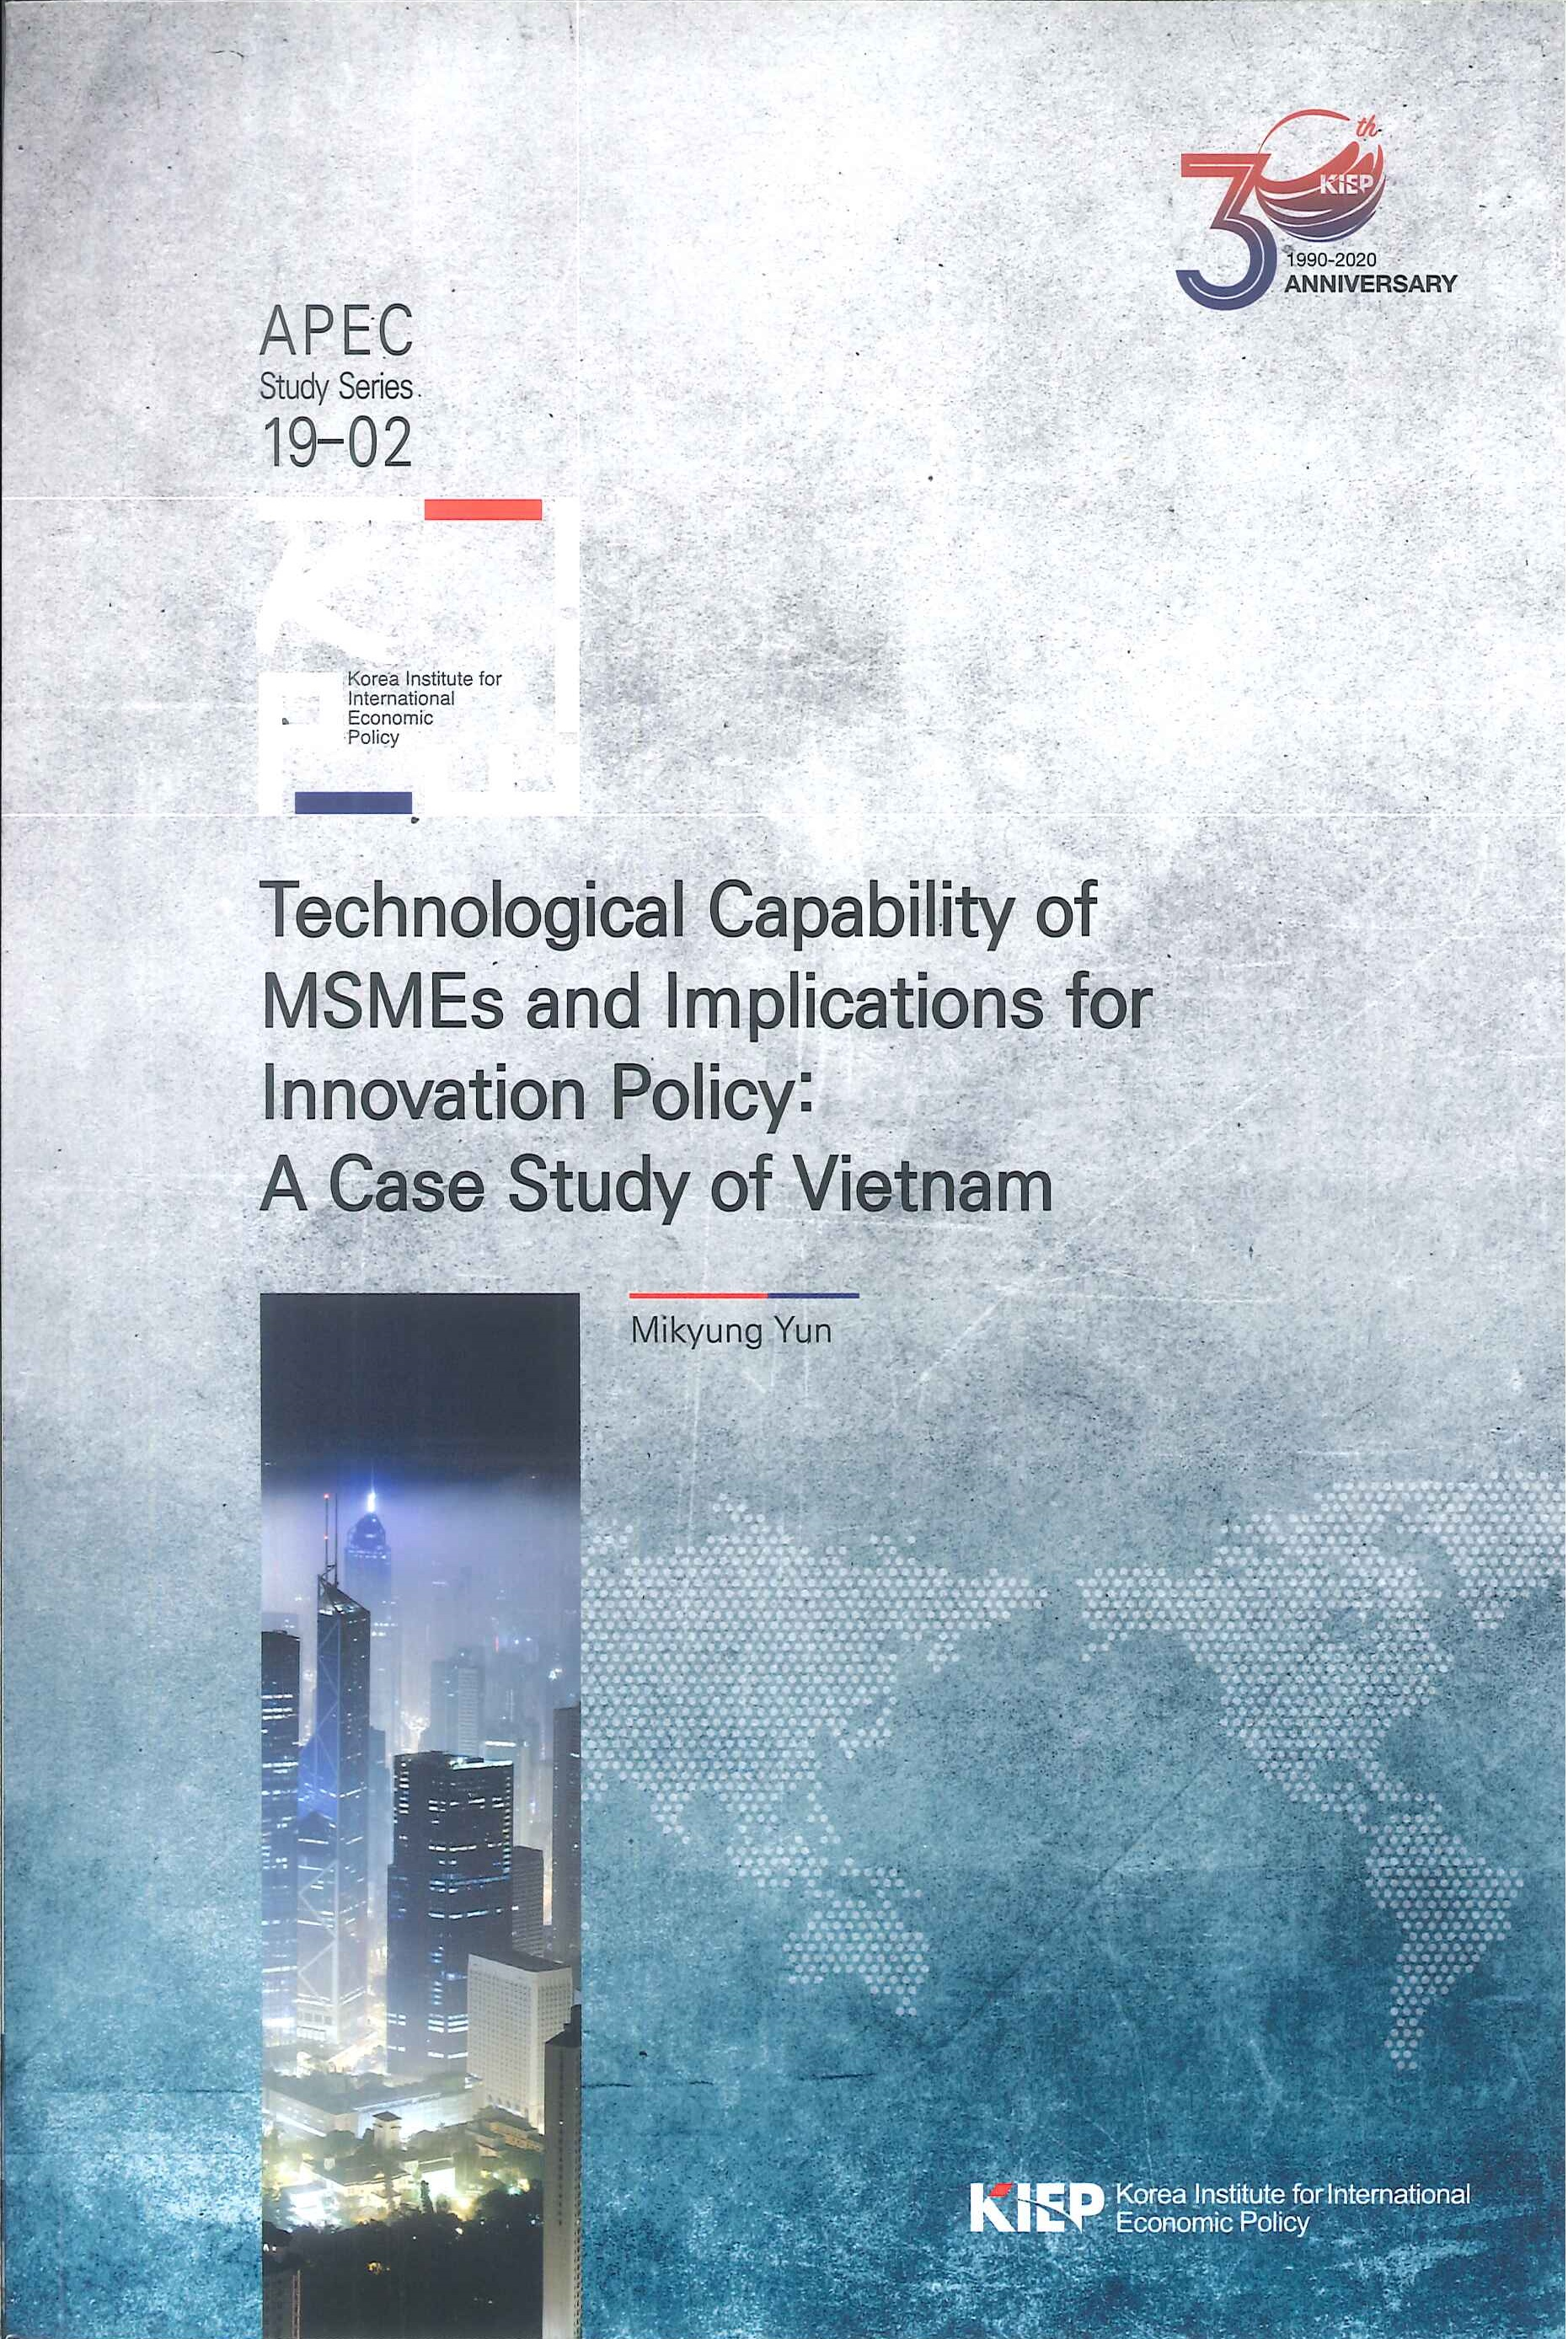 Technological capability of MSMEs and implications for innovation policy:a case study of Vietnam